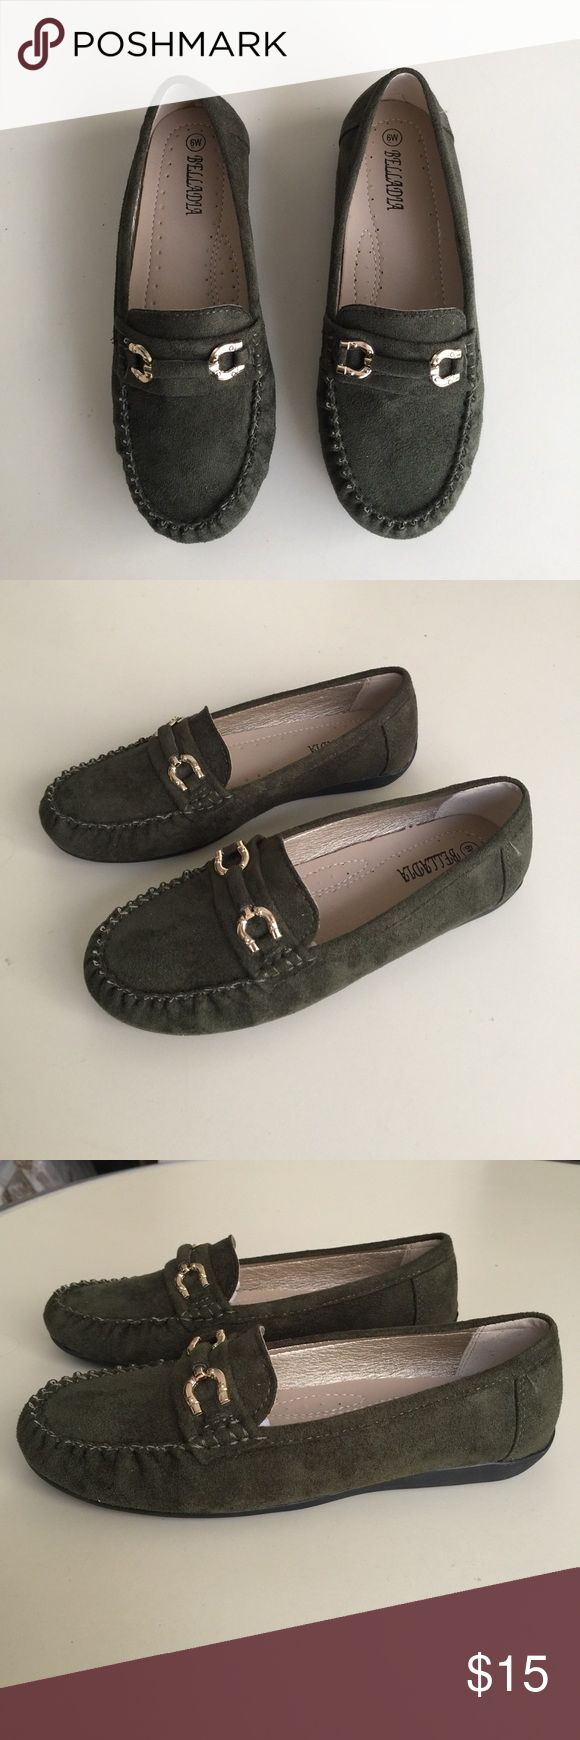 Army Green Faux Suede Loafers Cute and casual army green faux suede loafers with gold tone detail. Size 6. NWOT, never worn. Shoes Flats & Loafers